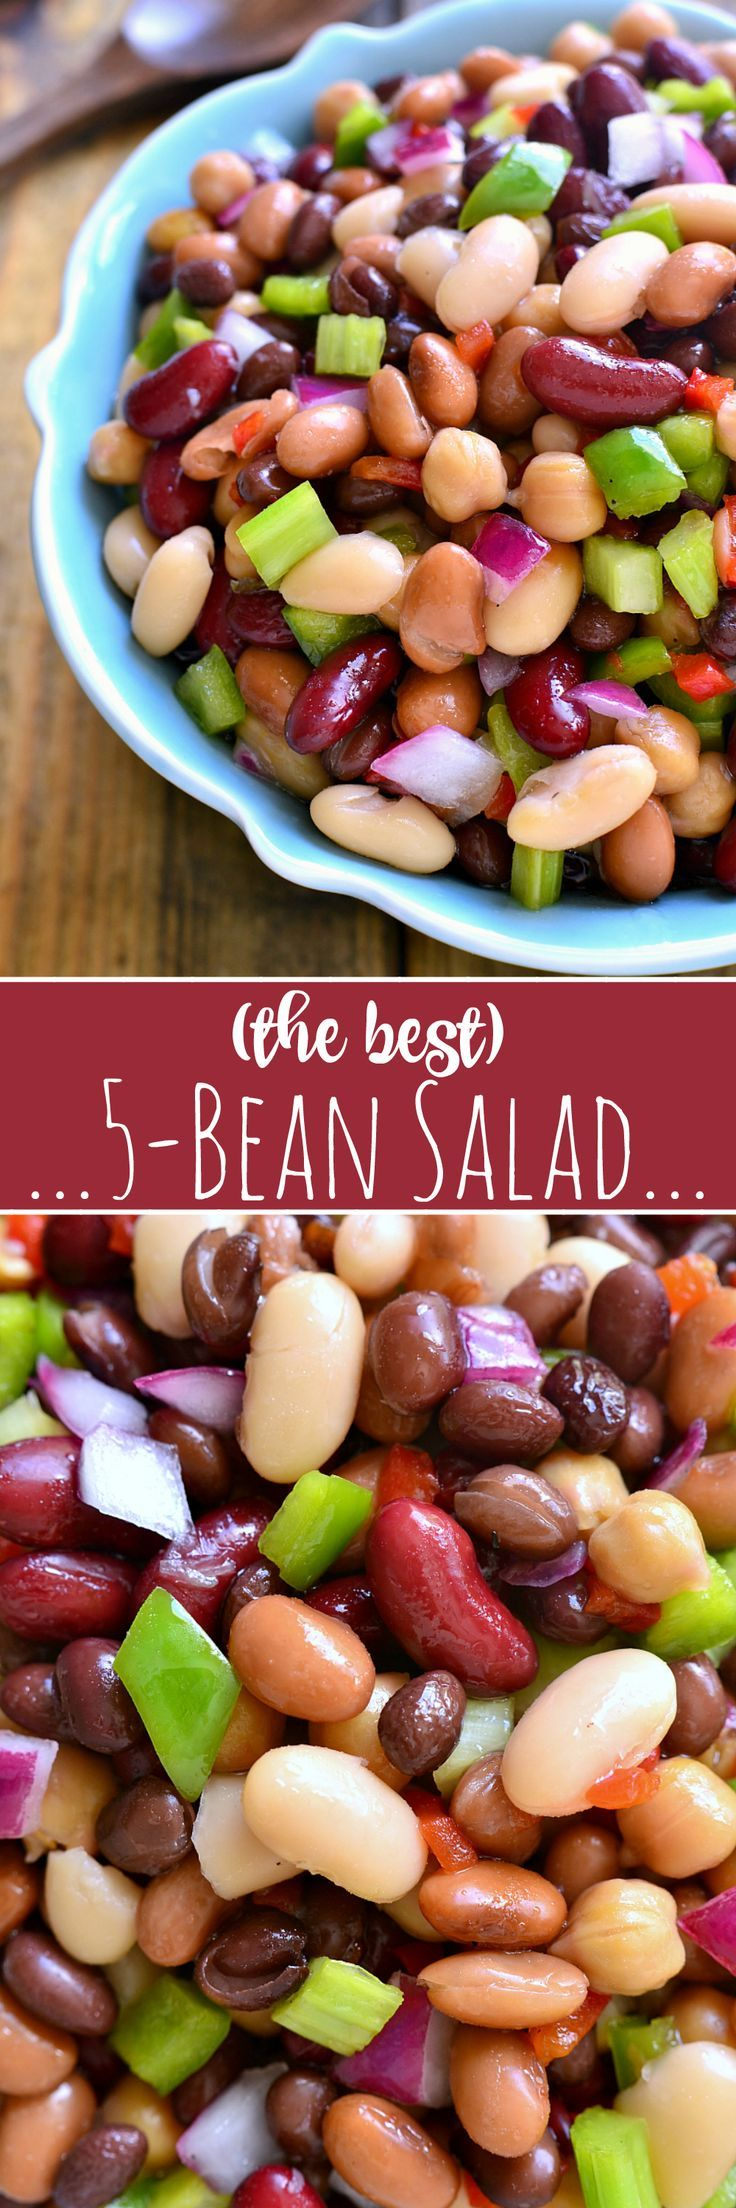 This 5-Bean Salad combines black, pinto, garbanzo, cannellini, and kidney beans…